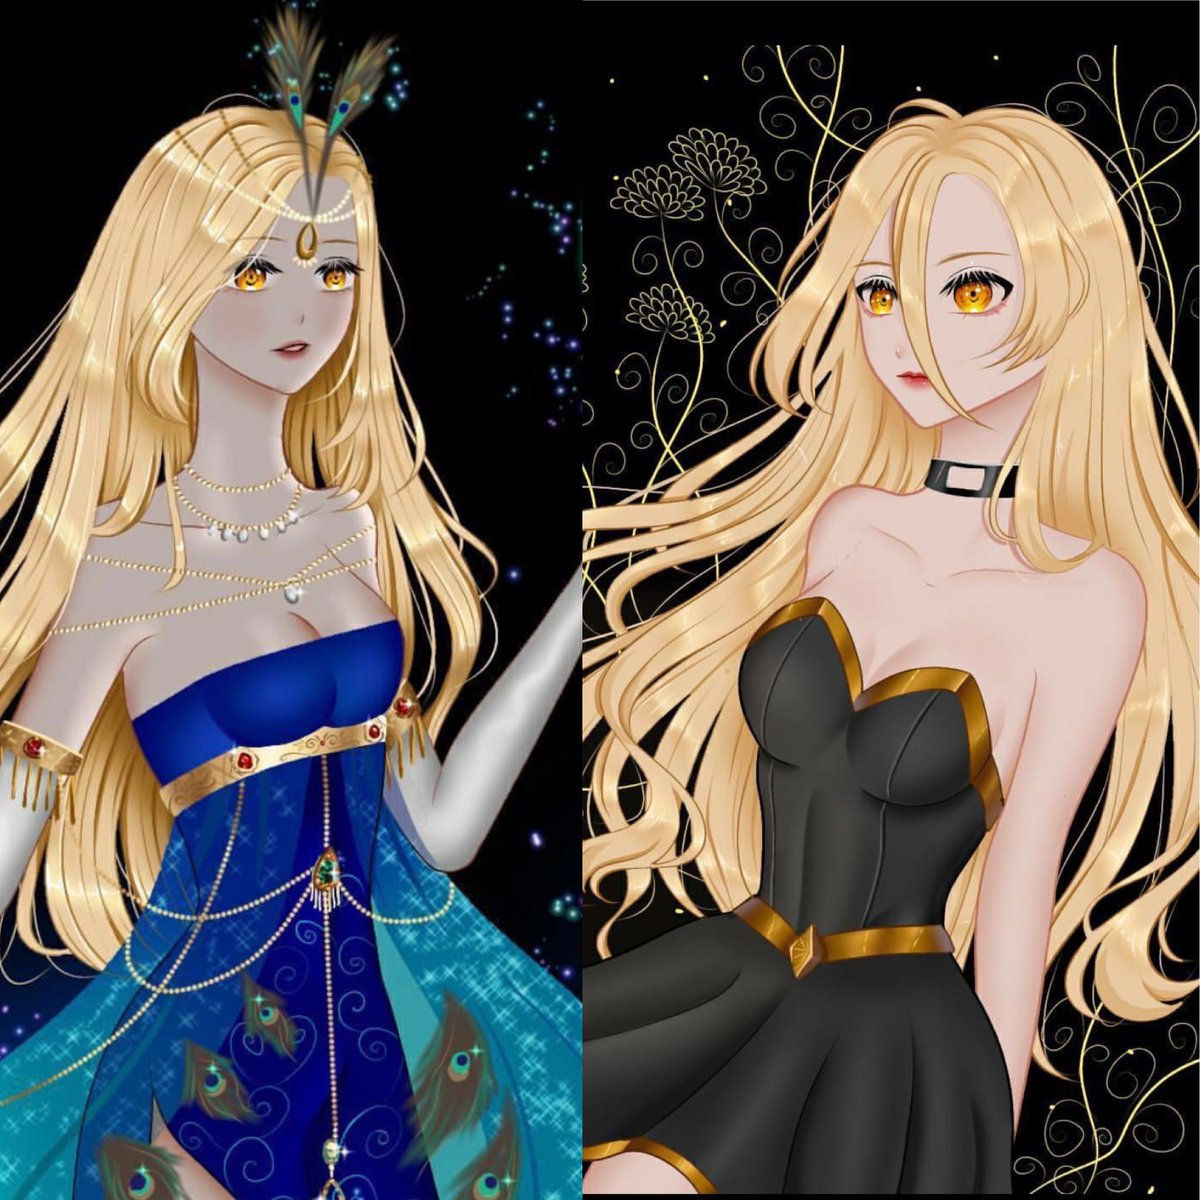 Two stunning pictures of Lacie done by @lalunamea in their art. I love the peacock dress in the second picture. Thank you so much!!! #dungeonsanddragons #dnd #pathfinder #rpg #ttrpg #pathfinderrpg #tabletopgames #dice #criticalrole #art #dndart #cosplay #anime #roleplay